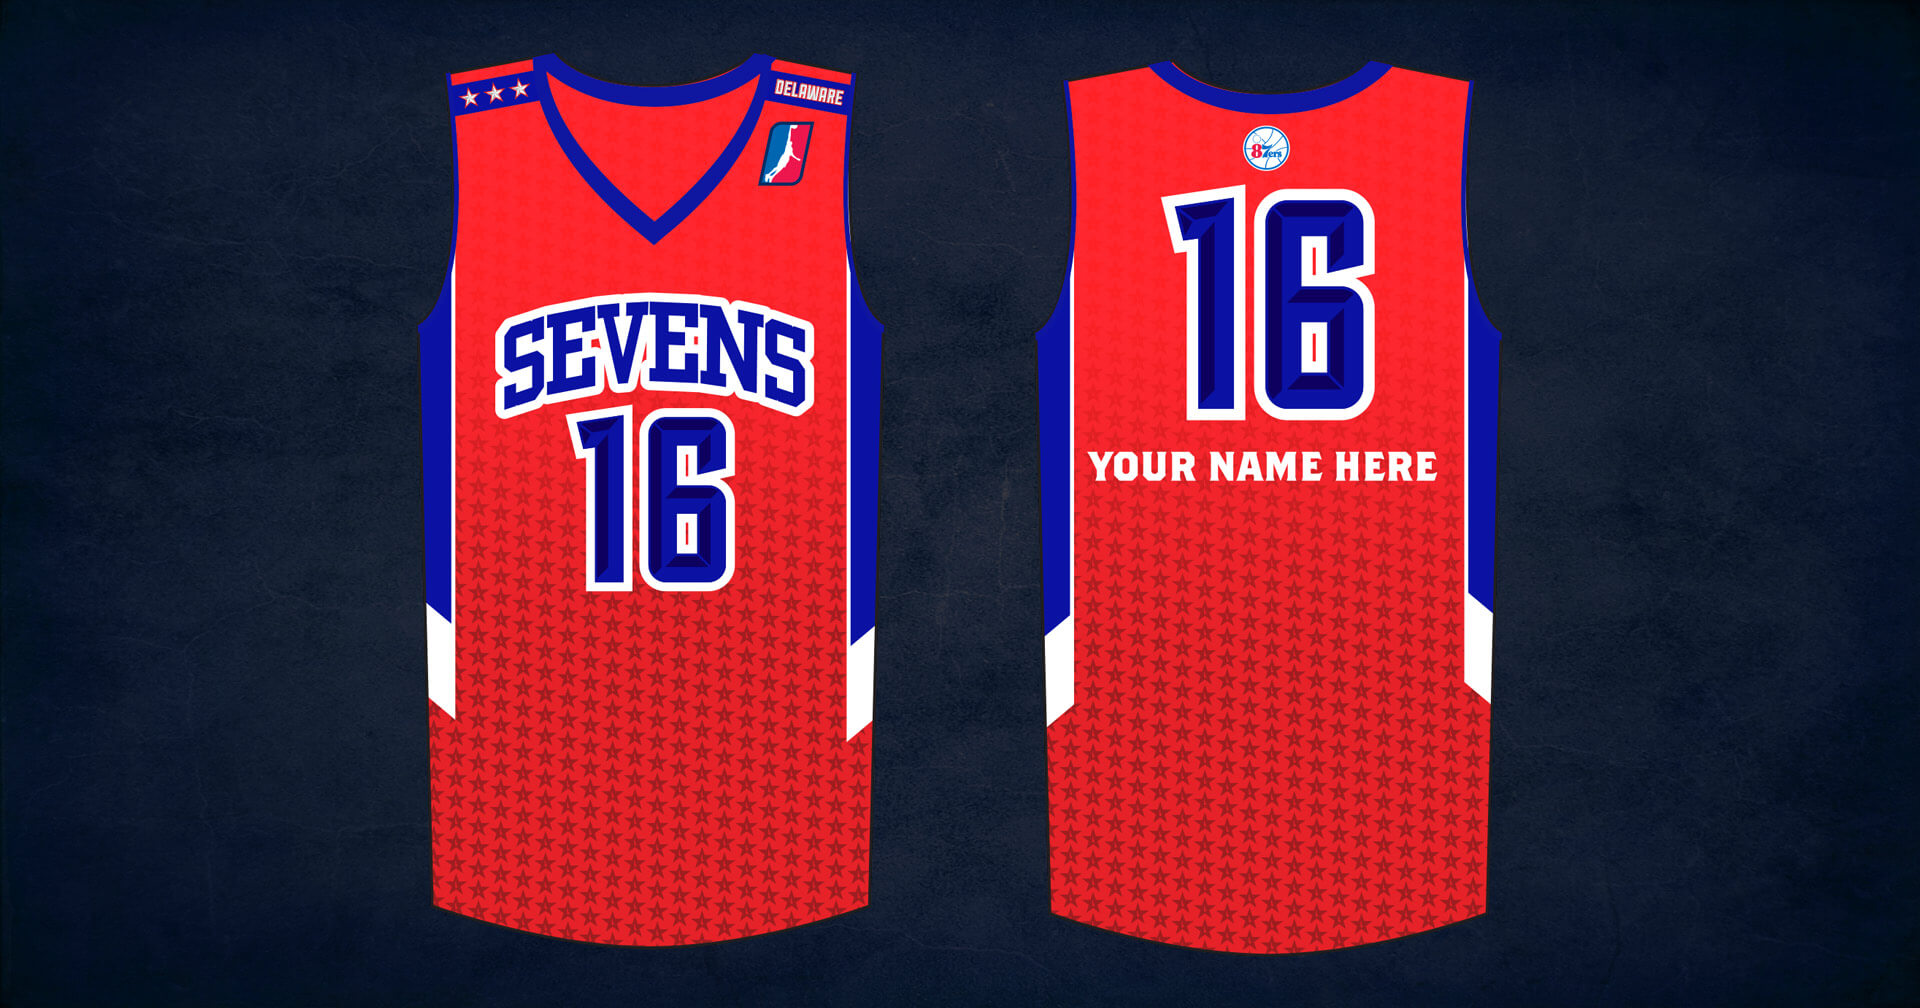 87ers_jersey2